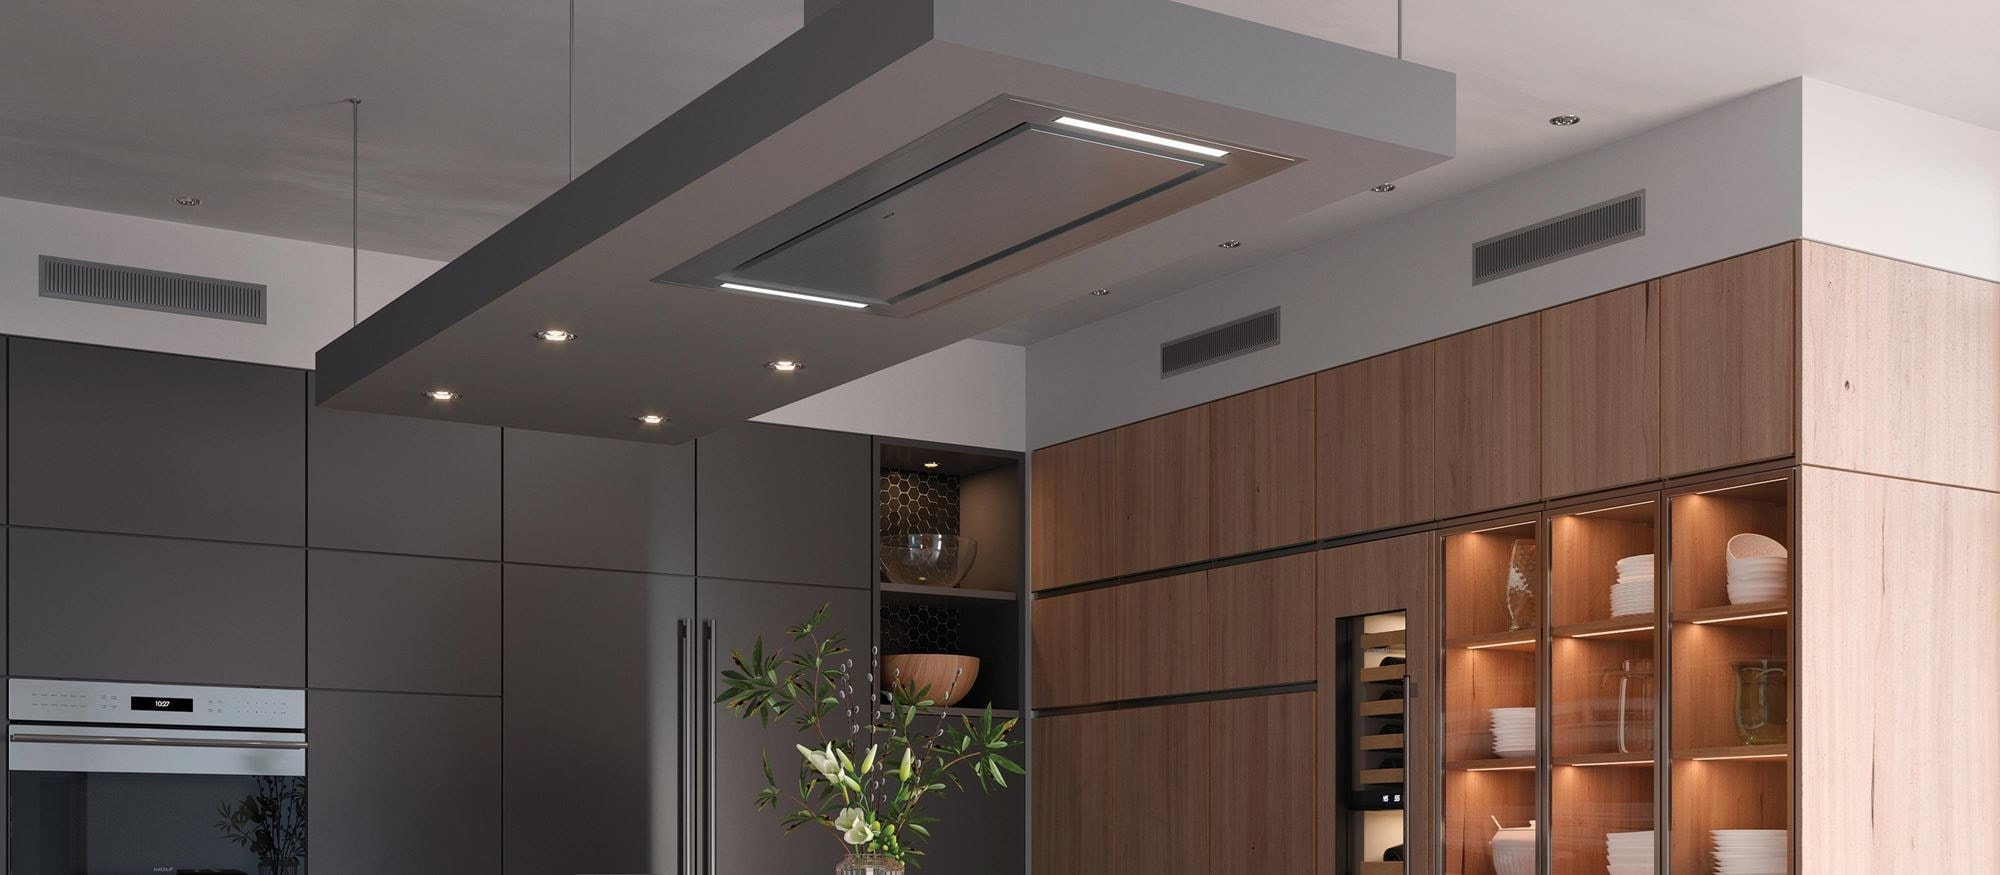 48 Ceiling Mounted Ventilation Vc48s Wolf Appliances